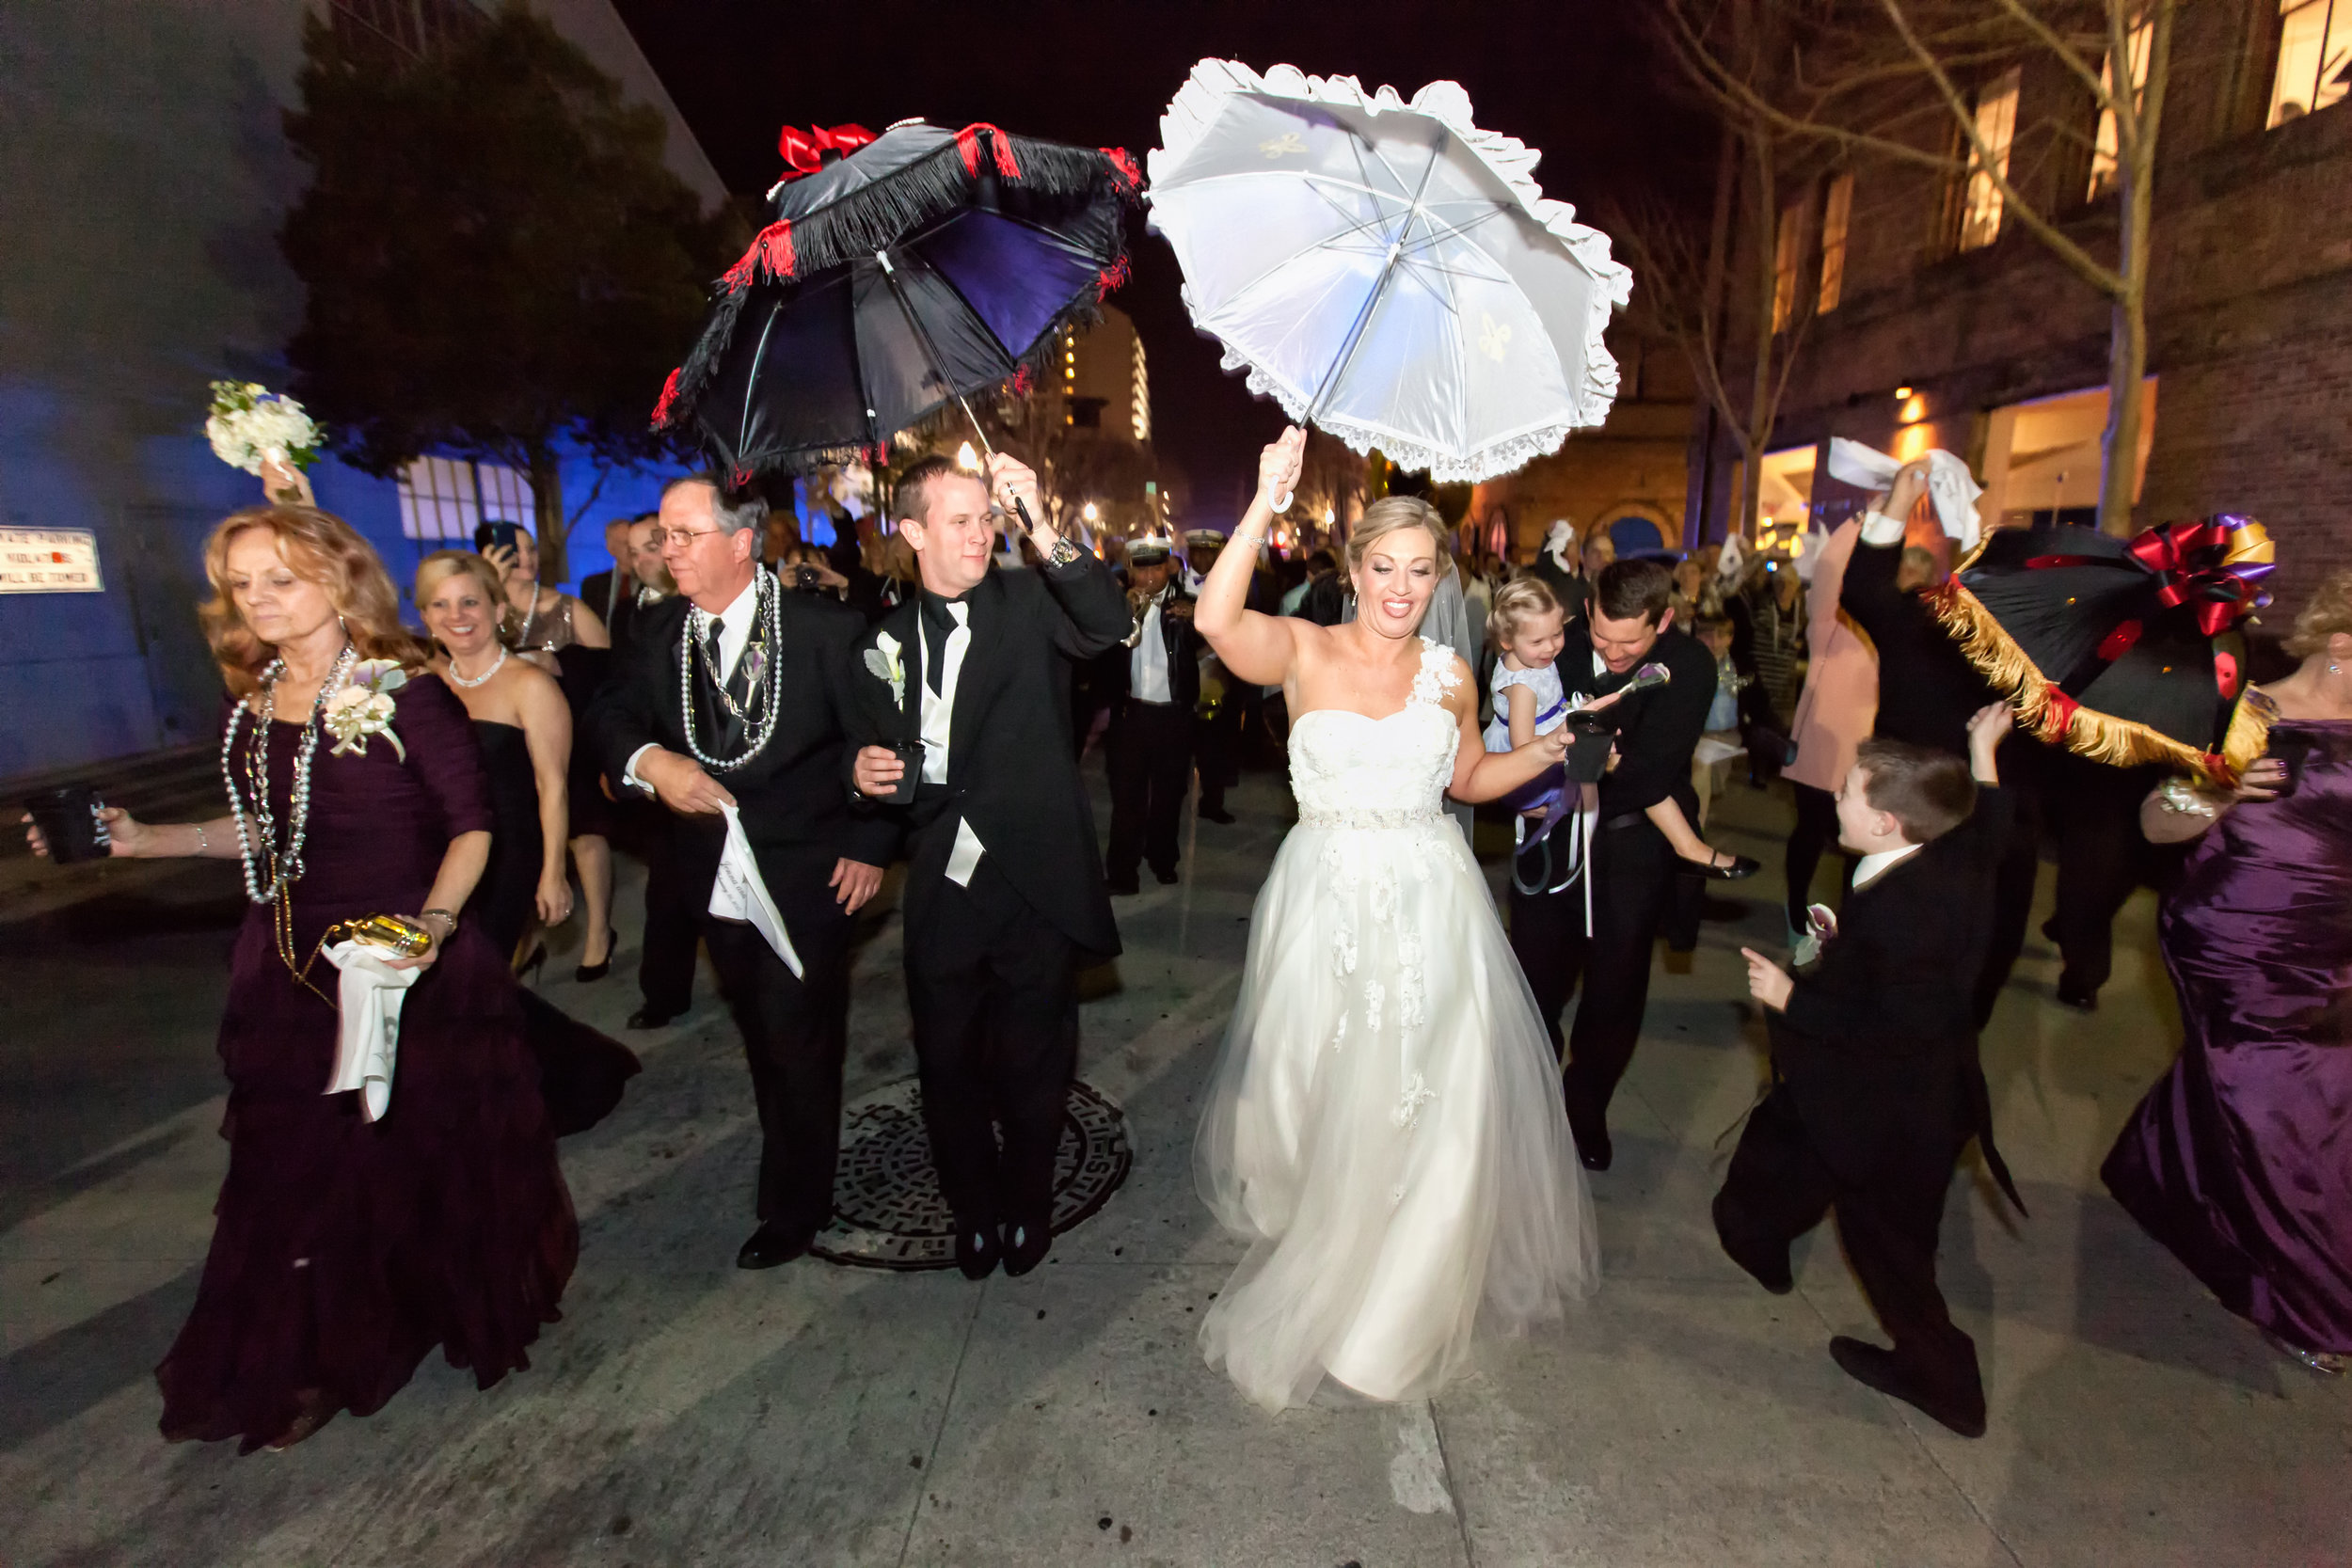 20150221-Swims-NOLA-Wedding-0852-3.jpg